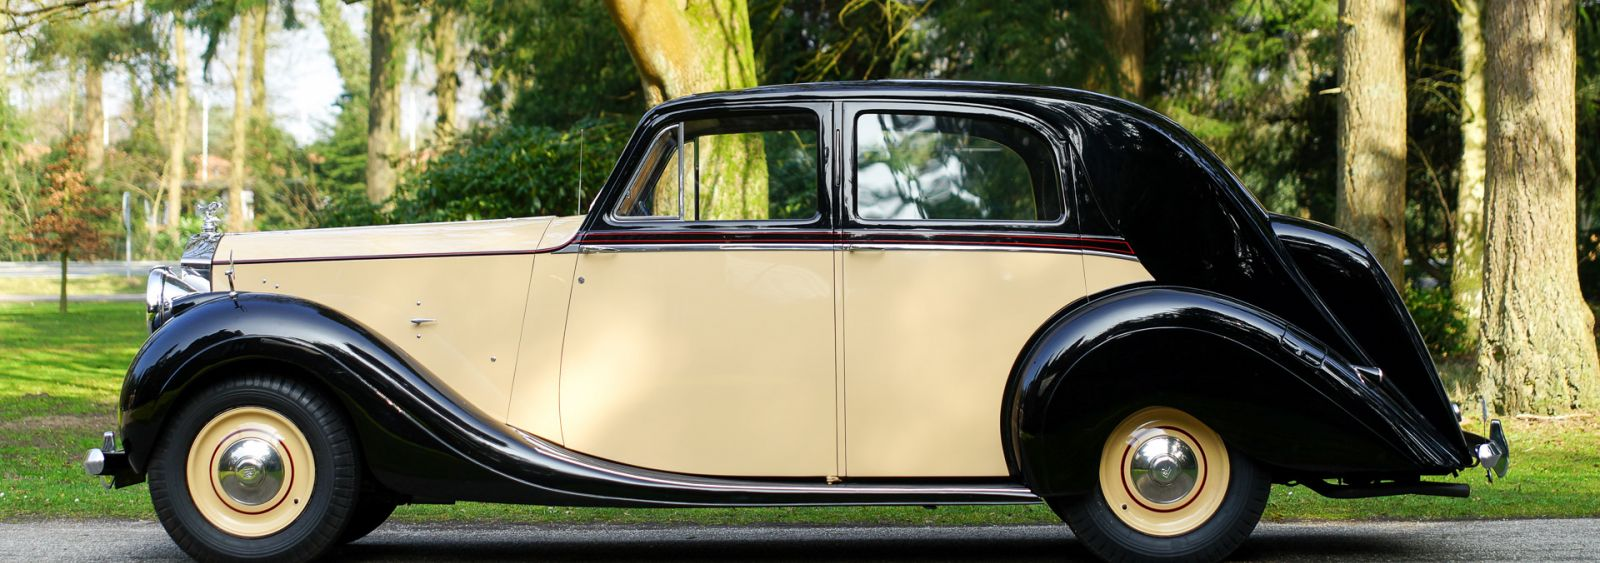 rolls royce silver wraith 1949 welcome to classicargarage. Black Bedroom Furniture Sets. Home Design Ideas